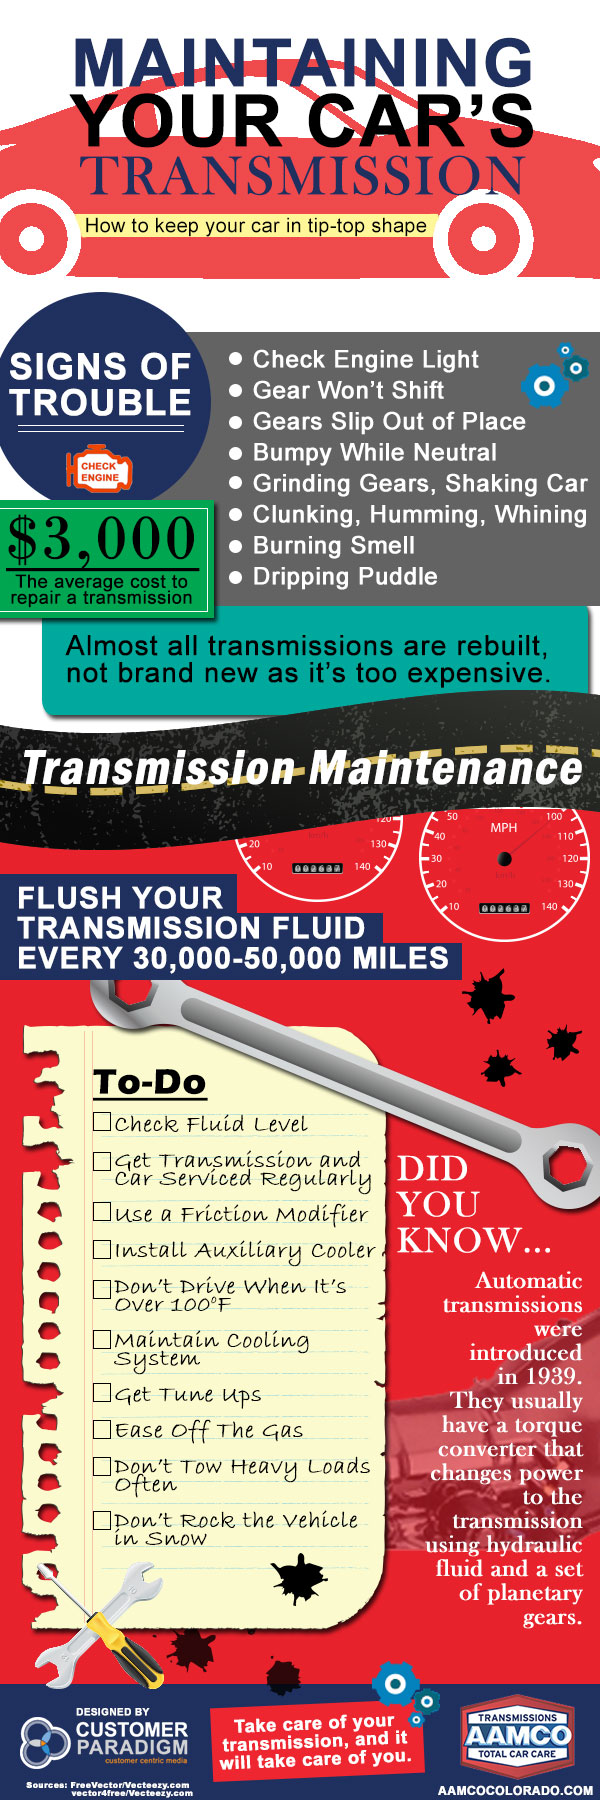 Maintaining Your Car's Transmission Infographic - AAMCO Colorado